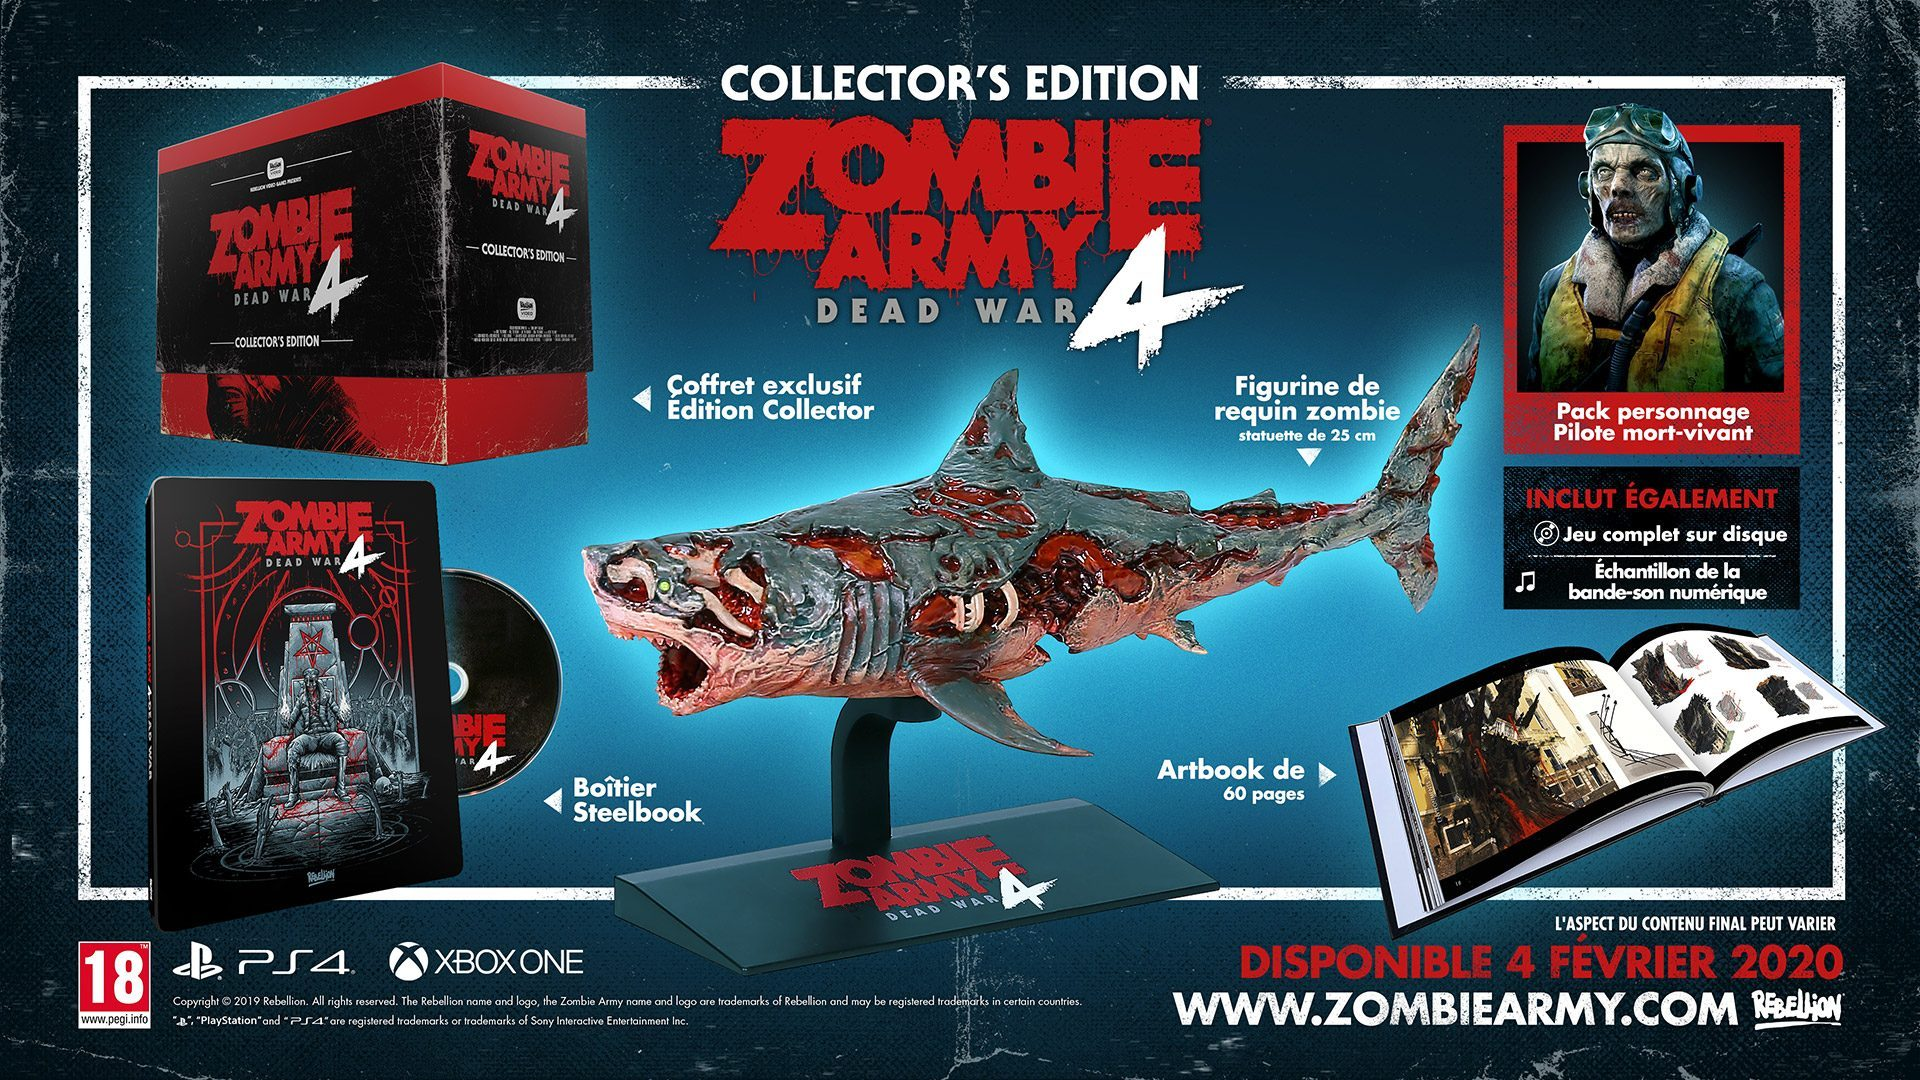 collectorzombiearmy